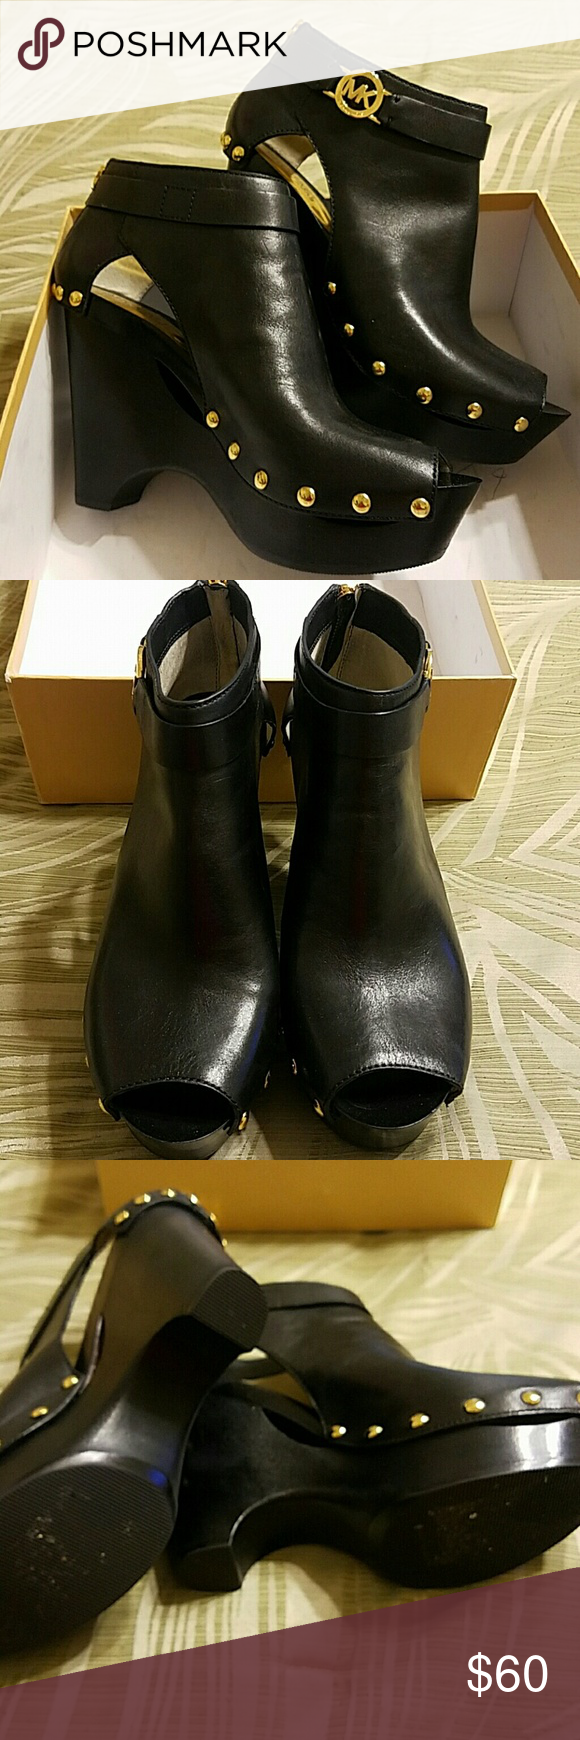 "Michael Kors ""Charm"" Booties Excellent condition leather booties.  No scuffs or scratches other than light wear to soles. Michael Kors Shoes Ankle Boots & Booties"